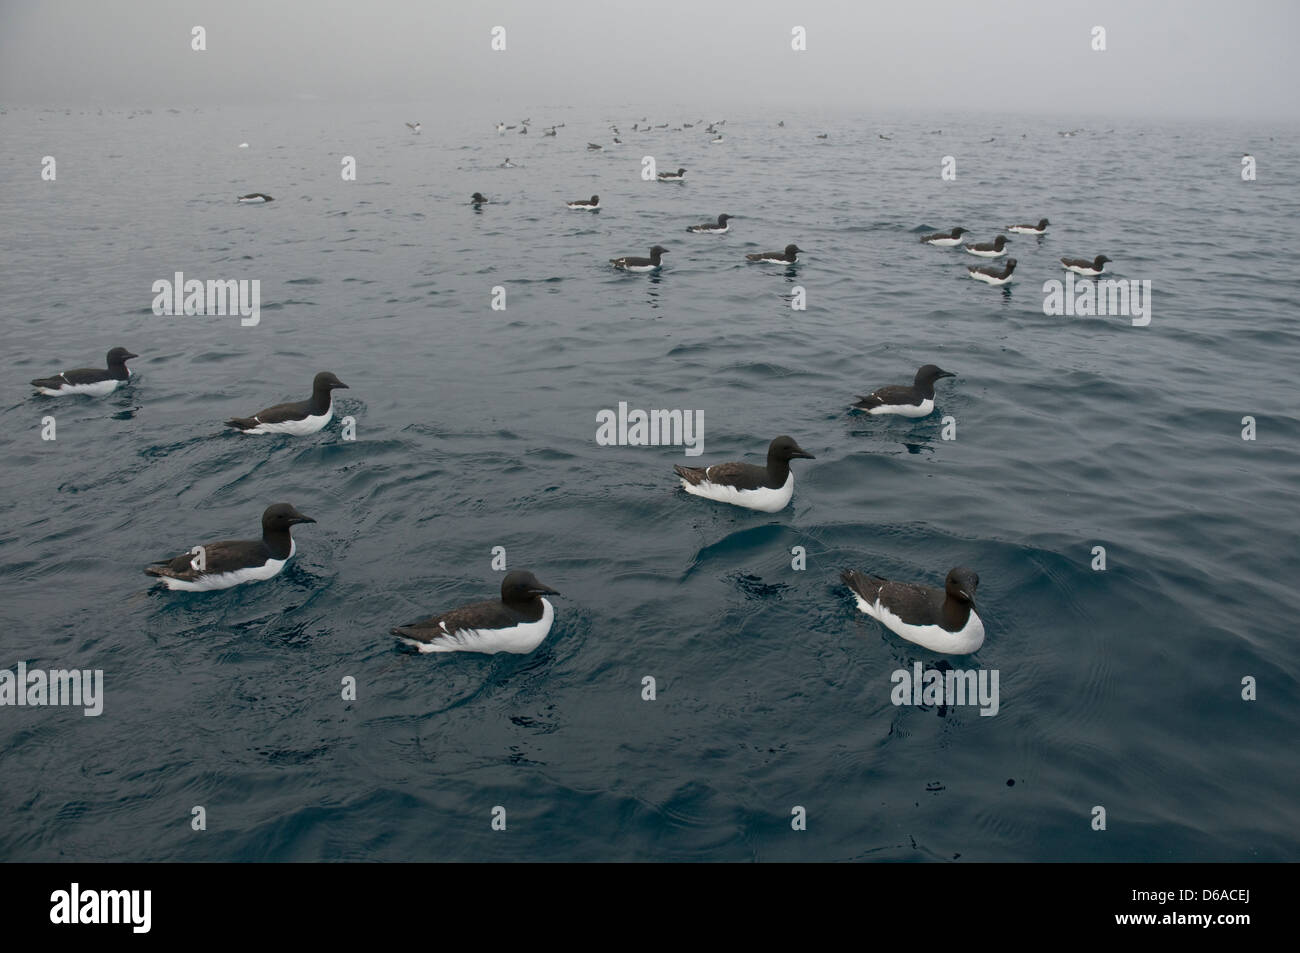 Norway, Svalbard Archipelago, Spitsbergen. Flock of Brunnich's guillemots, Uria lomvia, swimming along the coast. Stock Photo